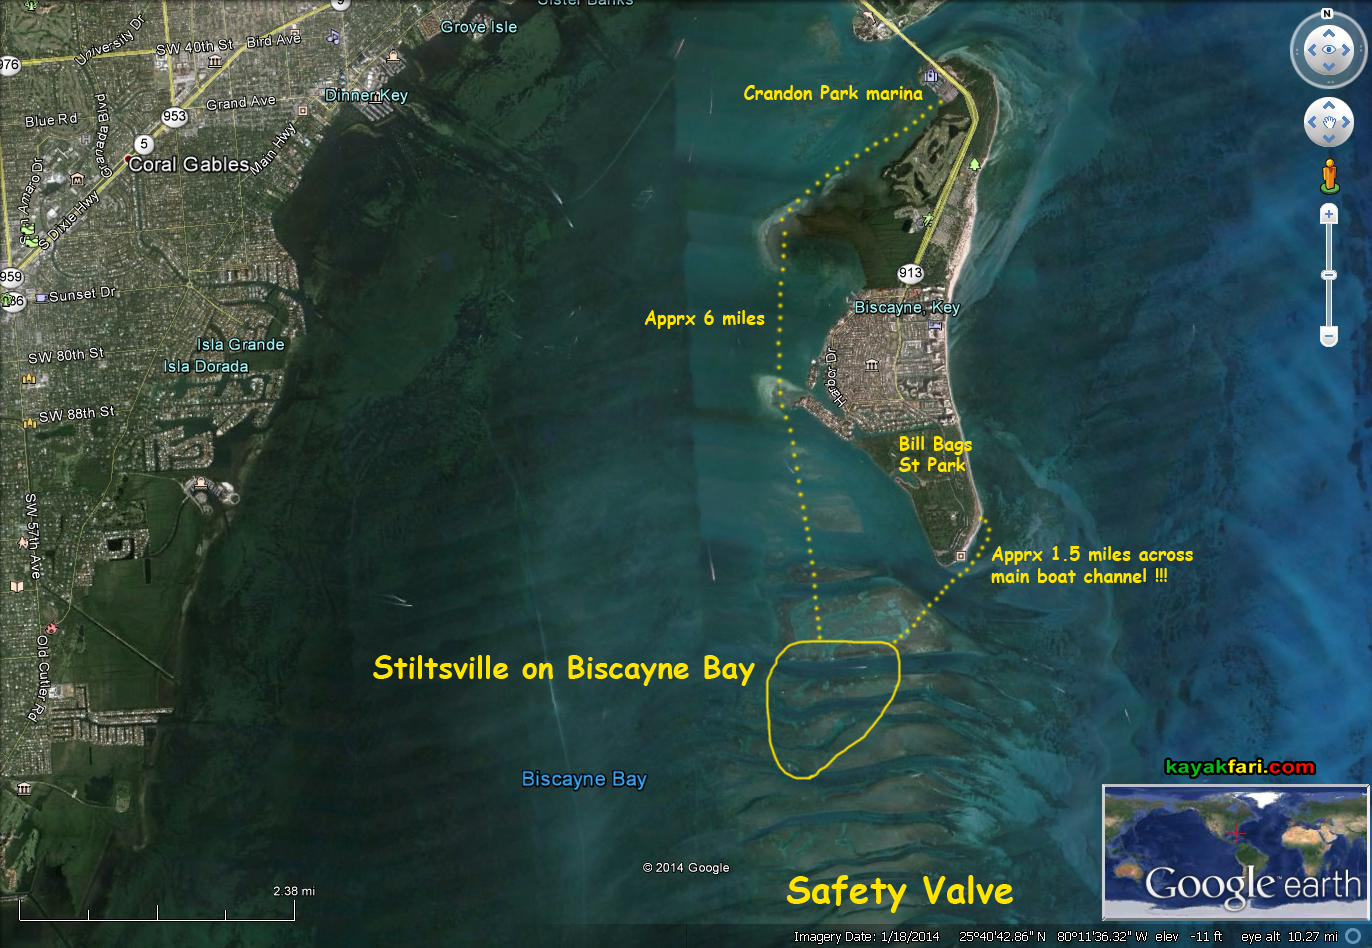 florida state park map with Kayak Miami Stiltsville Village In Biscayne Bay on Arc likewise Lake Cumberland Houseboat Rentals as well Watch also Diamond Head Climb The Most Famous Landmarks In The Hawaiian Islands also C  Schwab Okinawa.